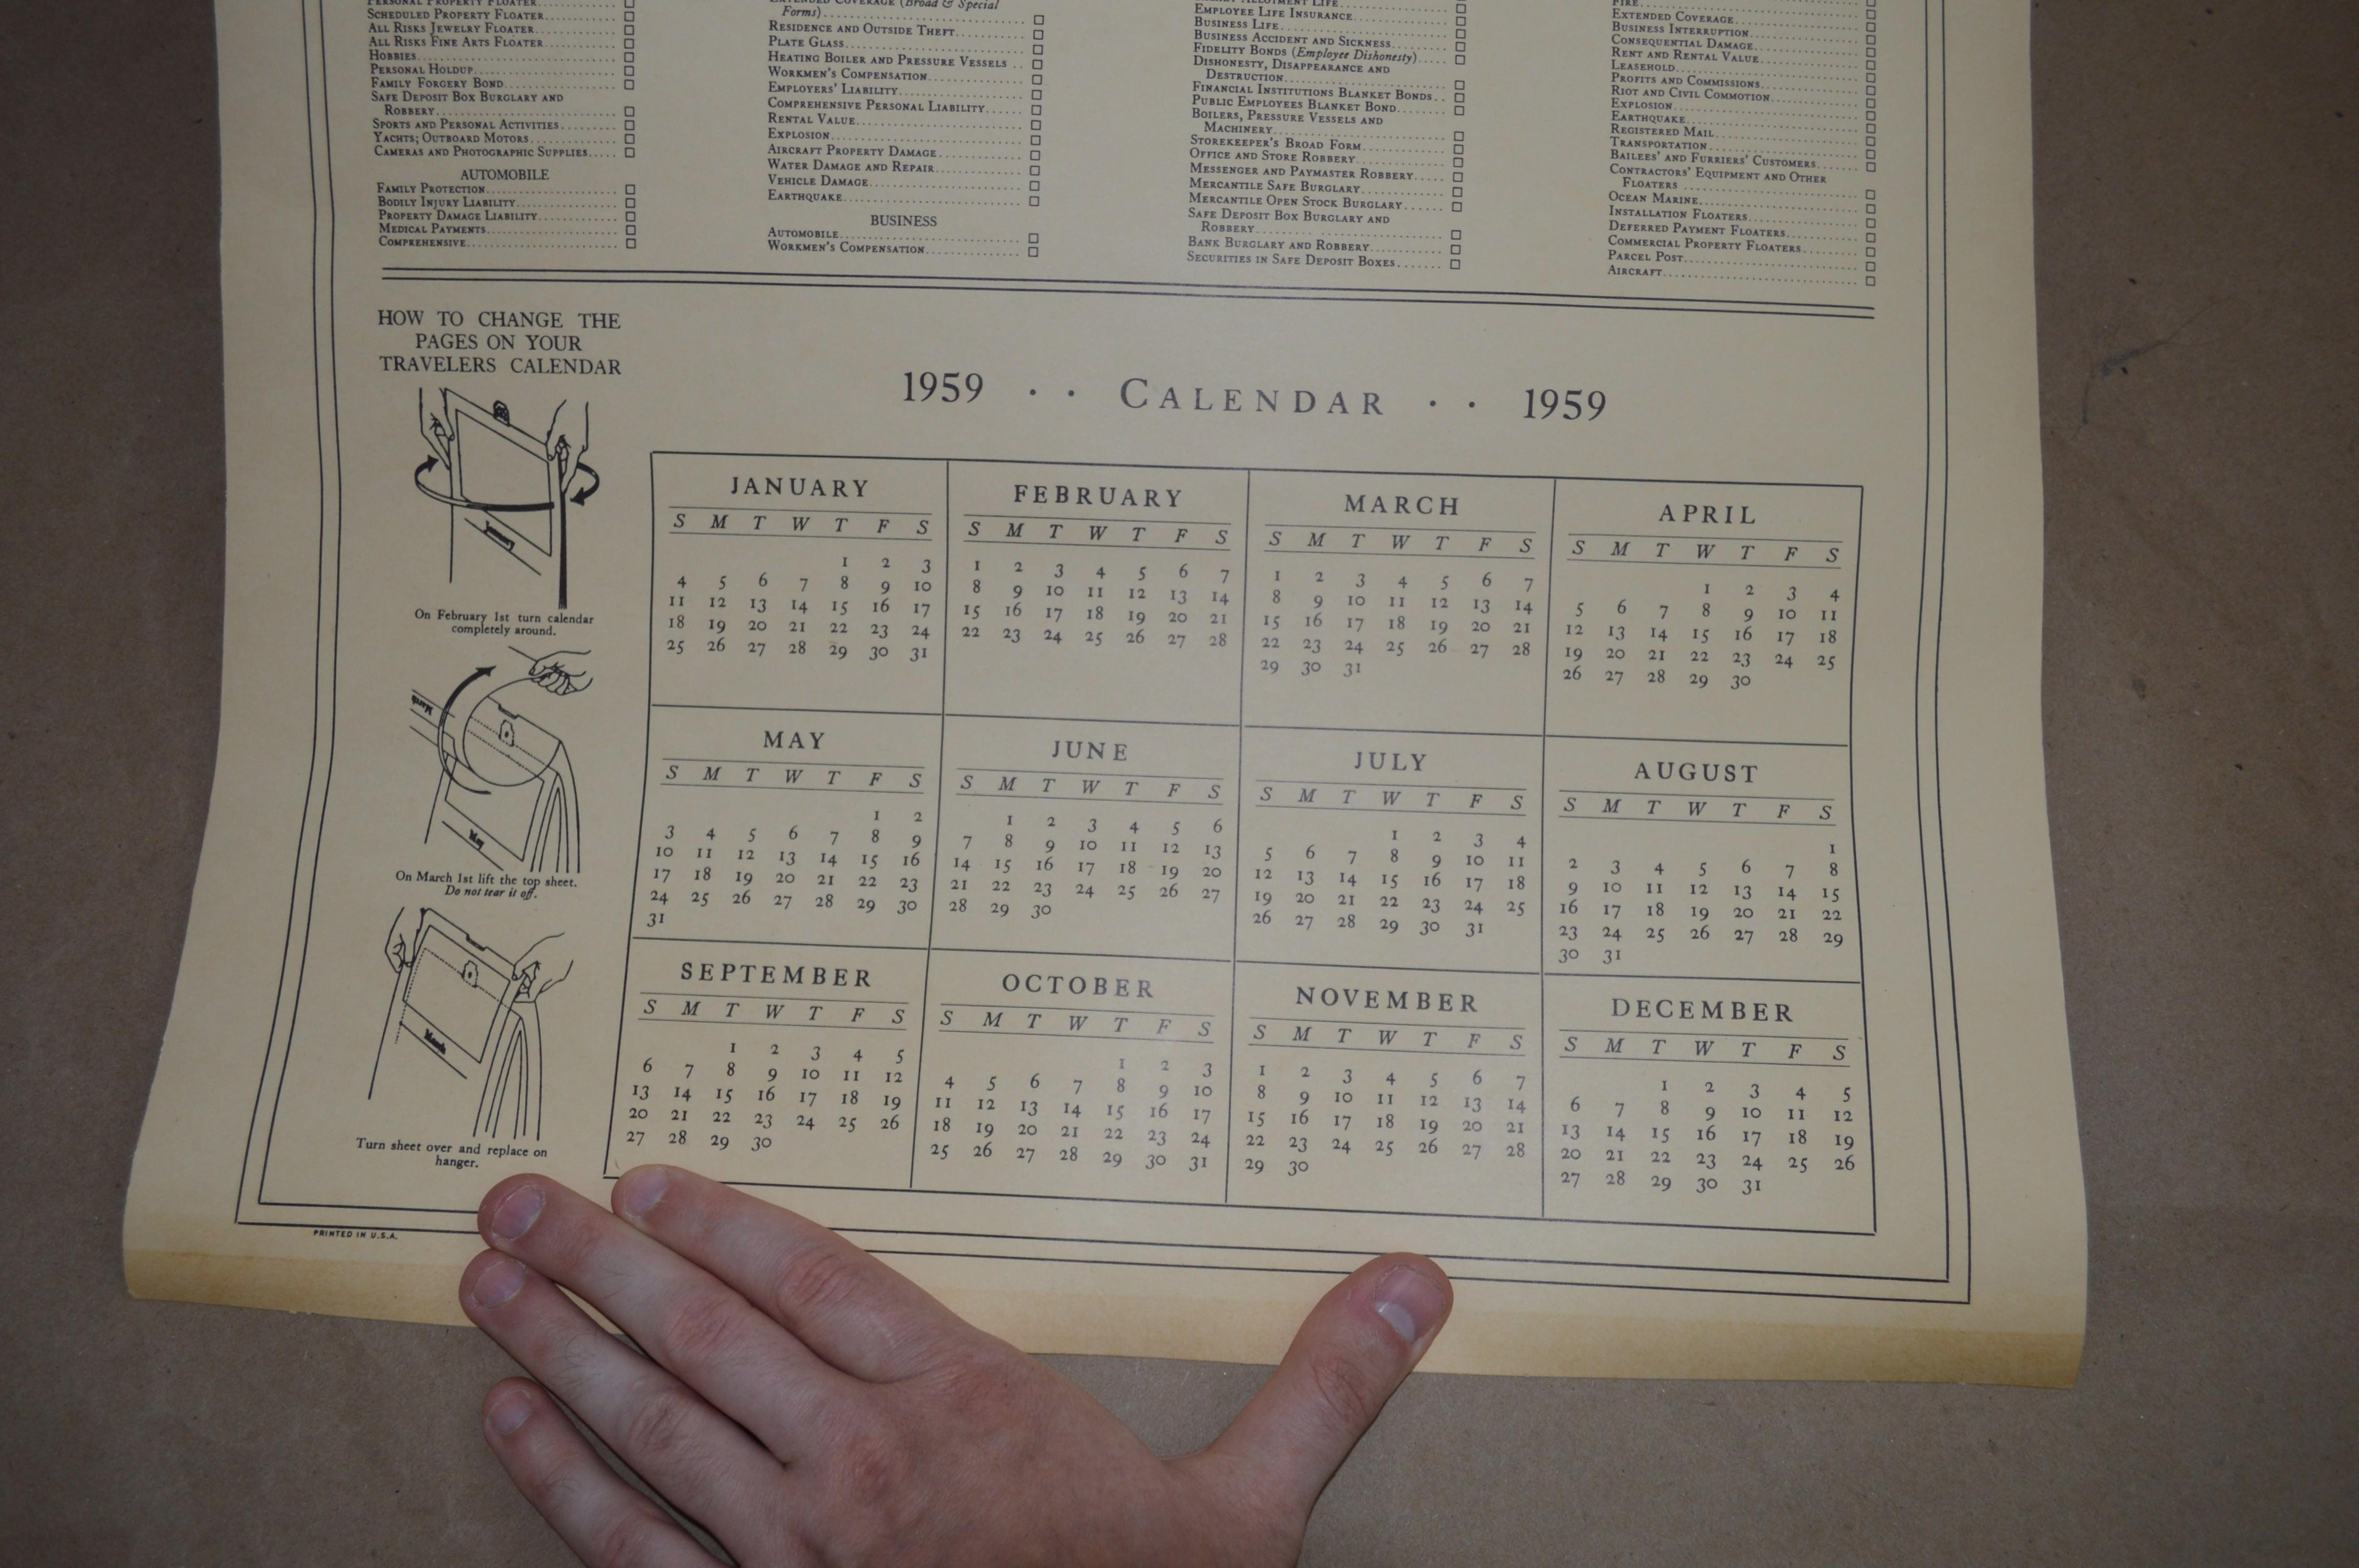 1959 Calendar.A Few Facts About The Travelers 1959 Calendar Property Room